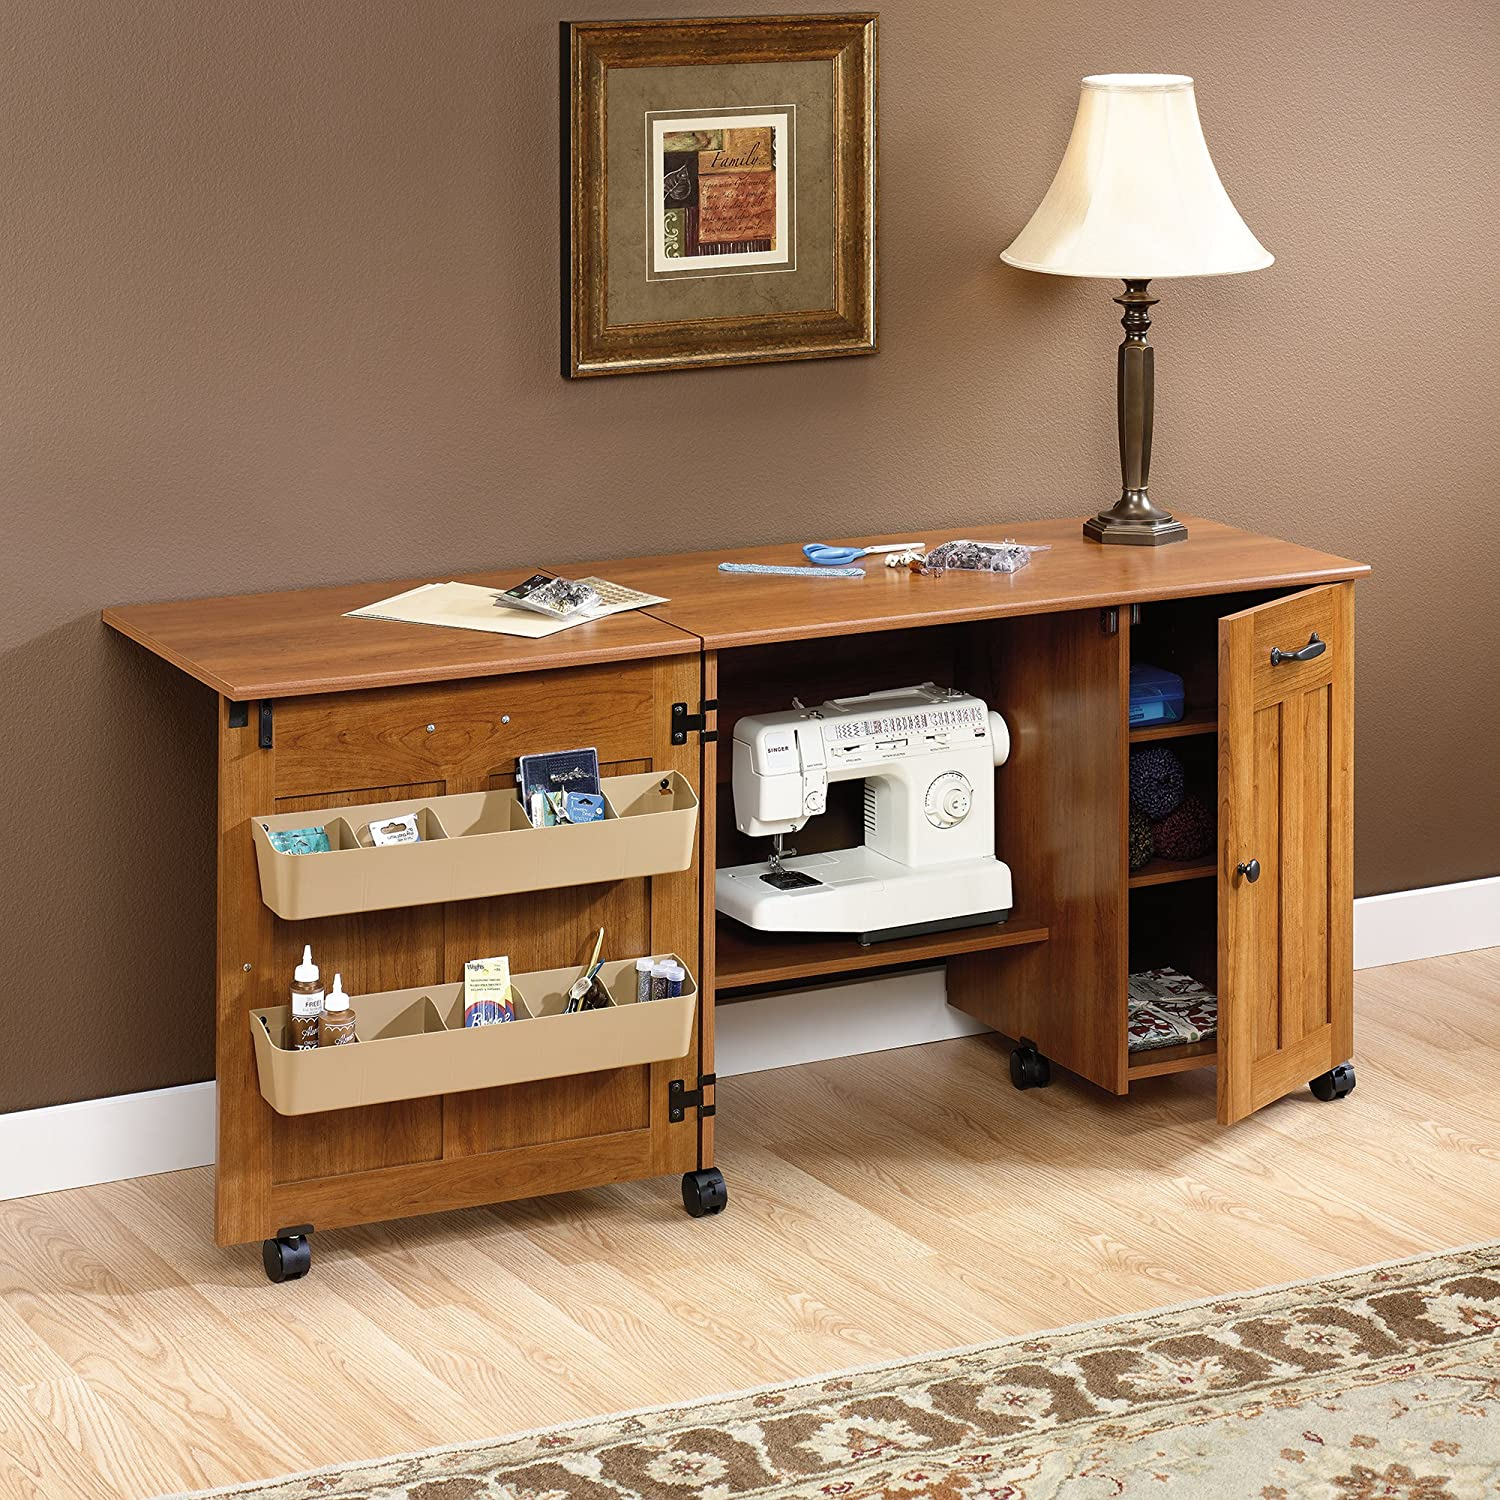 - Amazon.com: Sewing / Craft Center - Folding Table: Kitchen & Dining